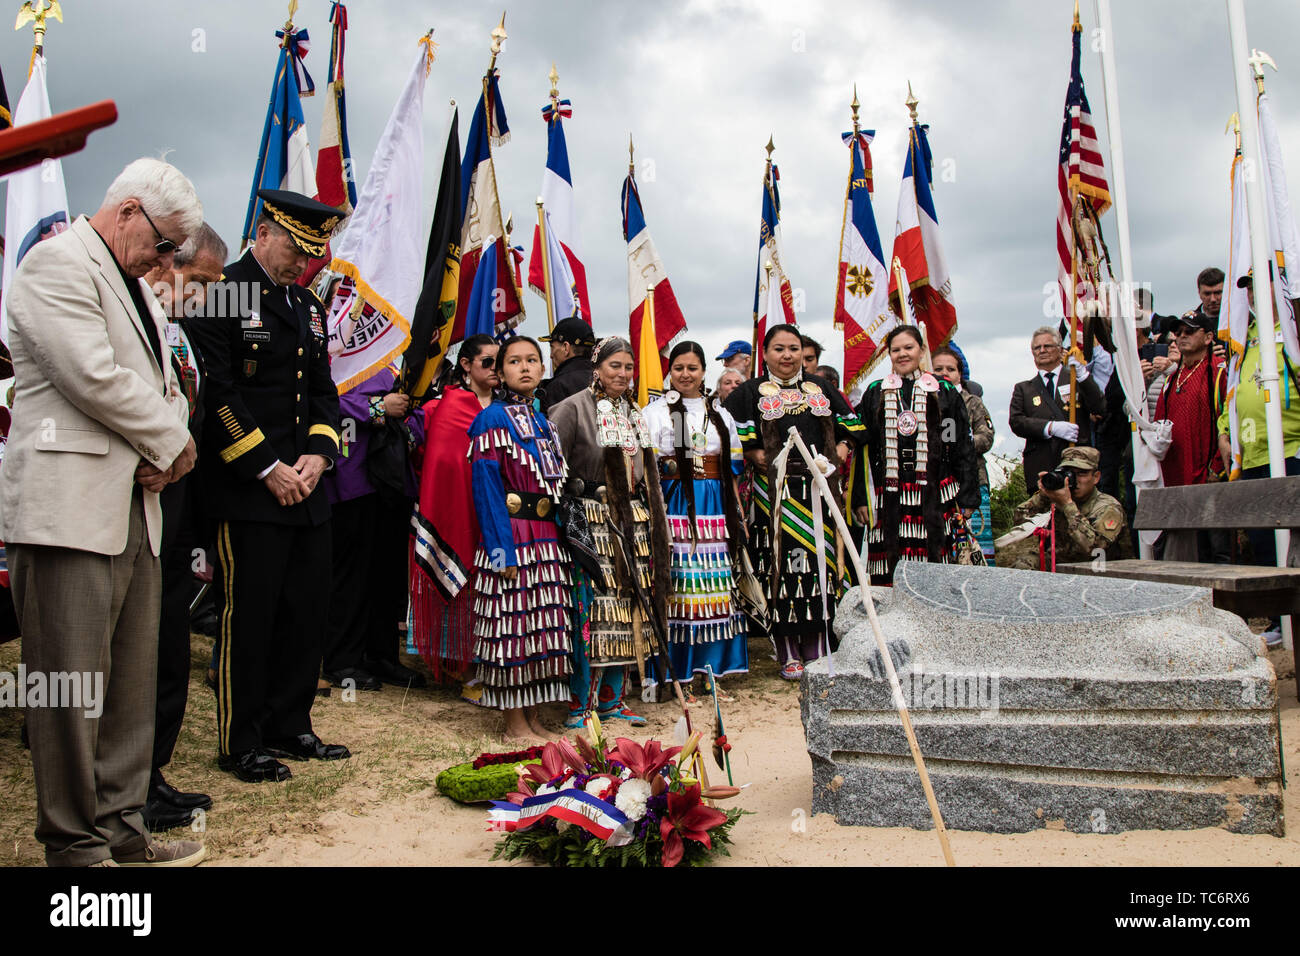 Pointe Du Hoc, France. 05th June, 2019. A moment of silence is honored for the fallen Native American WWII soldiers at the Charles Shay memorial ceremony at Omaha Beach on the anniversary of the D-Day invasion June 5, 2019 in Pointe du Hoc, Normandy, France. Thousands have converged on Normandy to commemorate the 75th anniversary of Operation Overlord, the WWII Allied invasion commonly known as D-Day. Credit: Planetpix/Alamy Live News Stock Photo